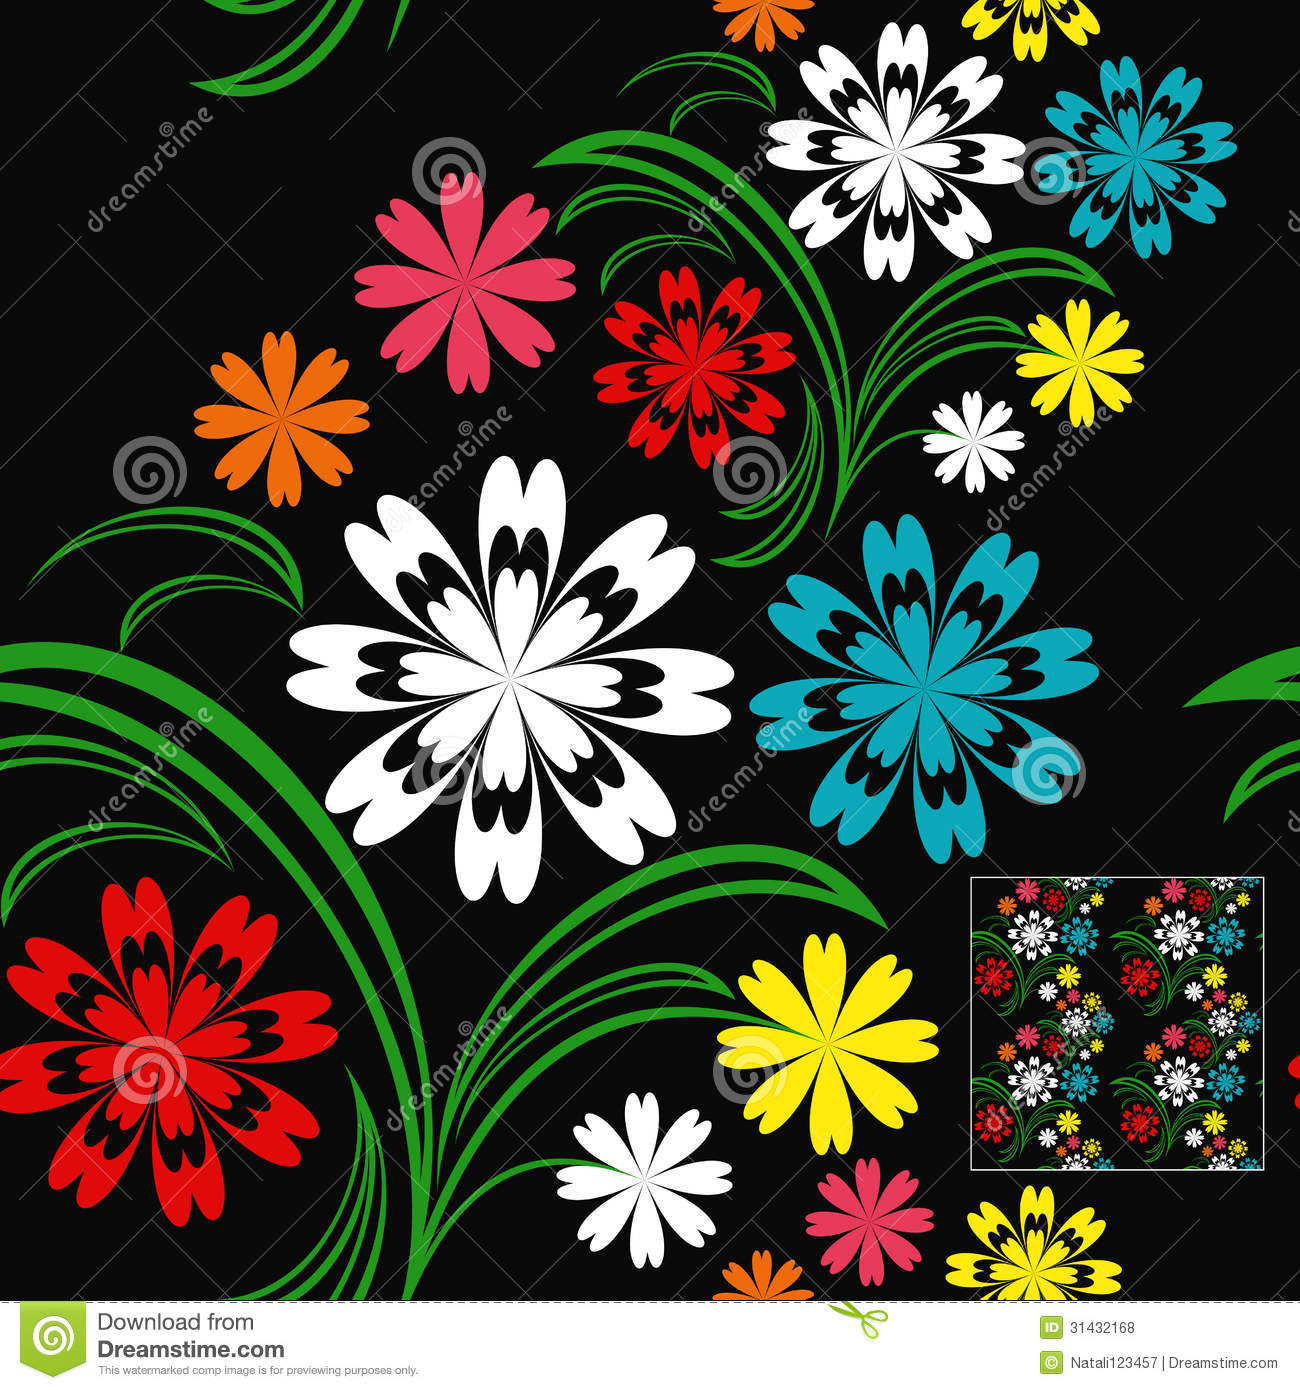 Black Flower And Bud Pattern Royalty Free Stock Photos: Flower Seamless Pattern With Colorful Flowers On A Royalty